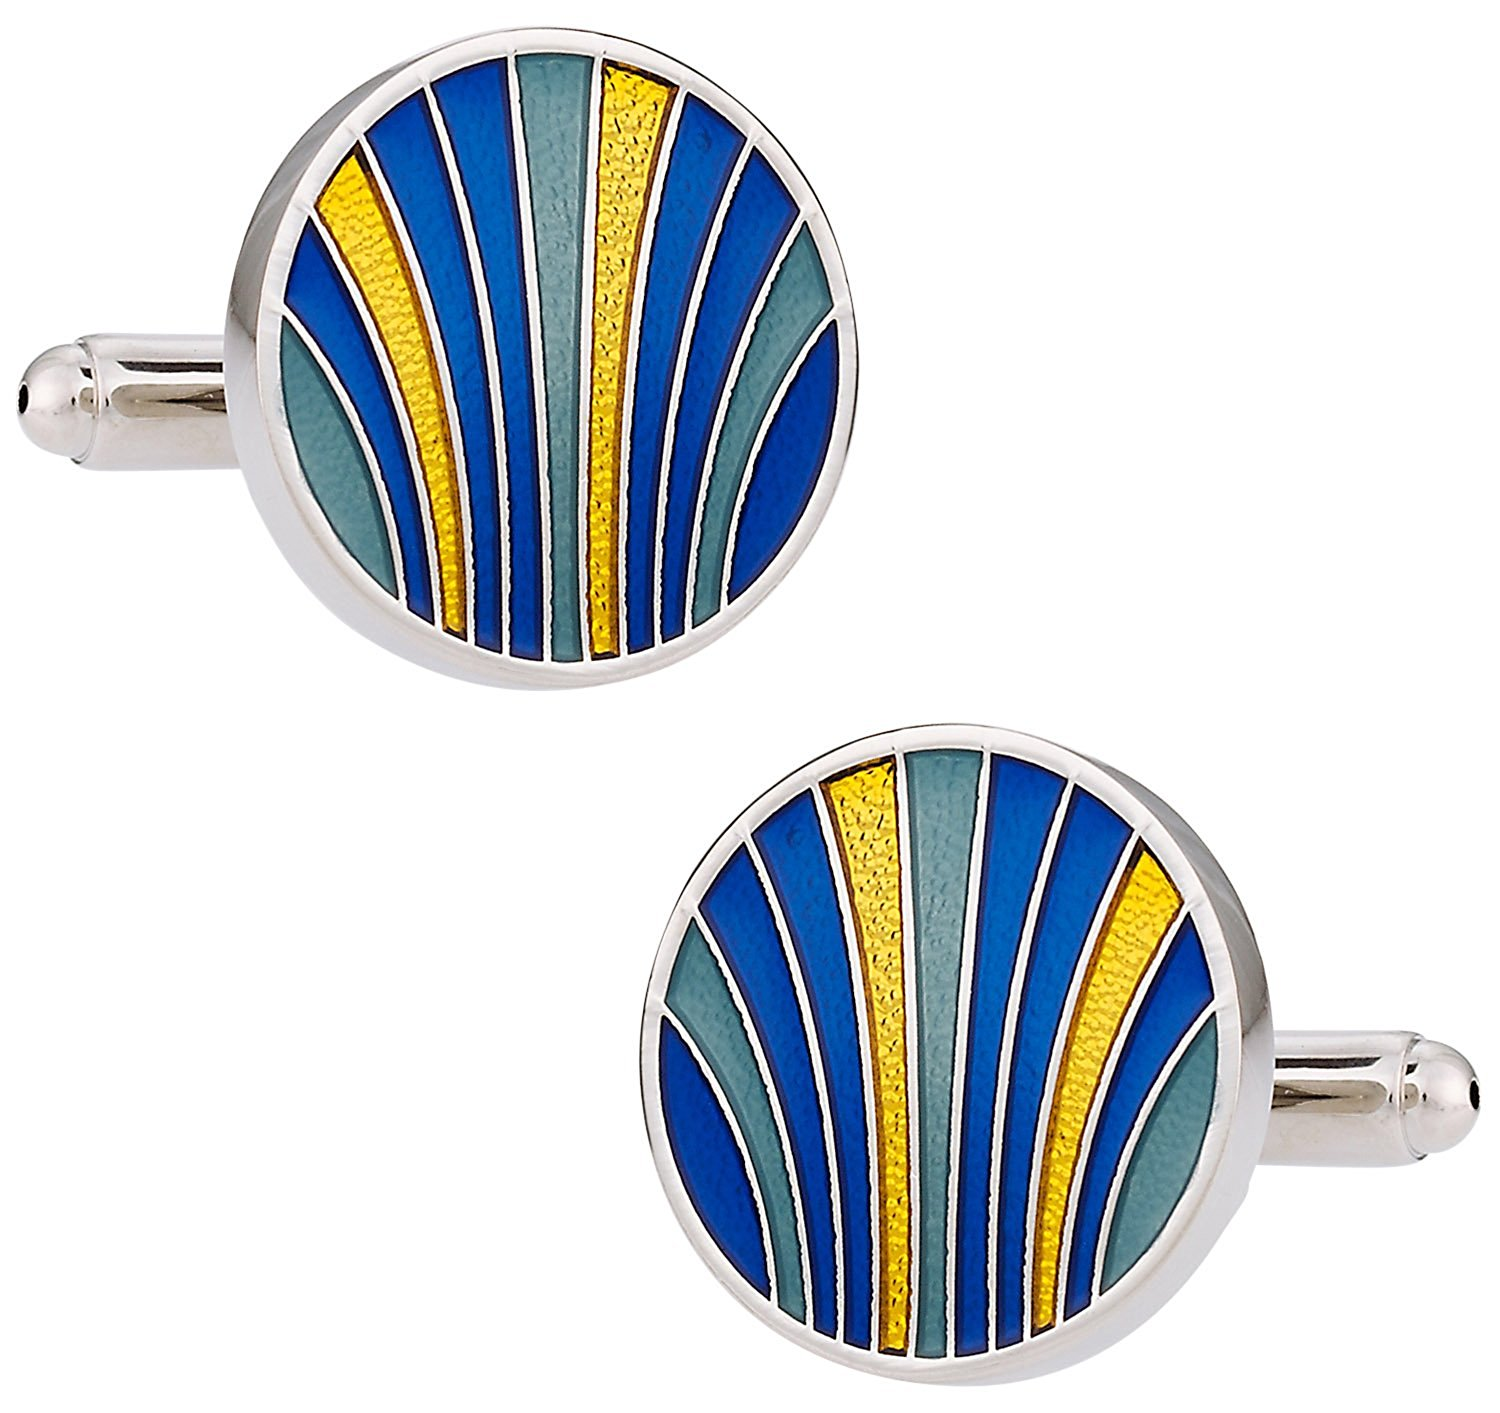 Cuff-Daddy Unique Blue, Yellow, Teal Enamel Round Silver Cufflinks with Presentation Box